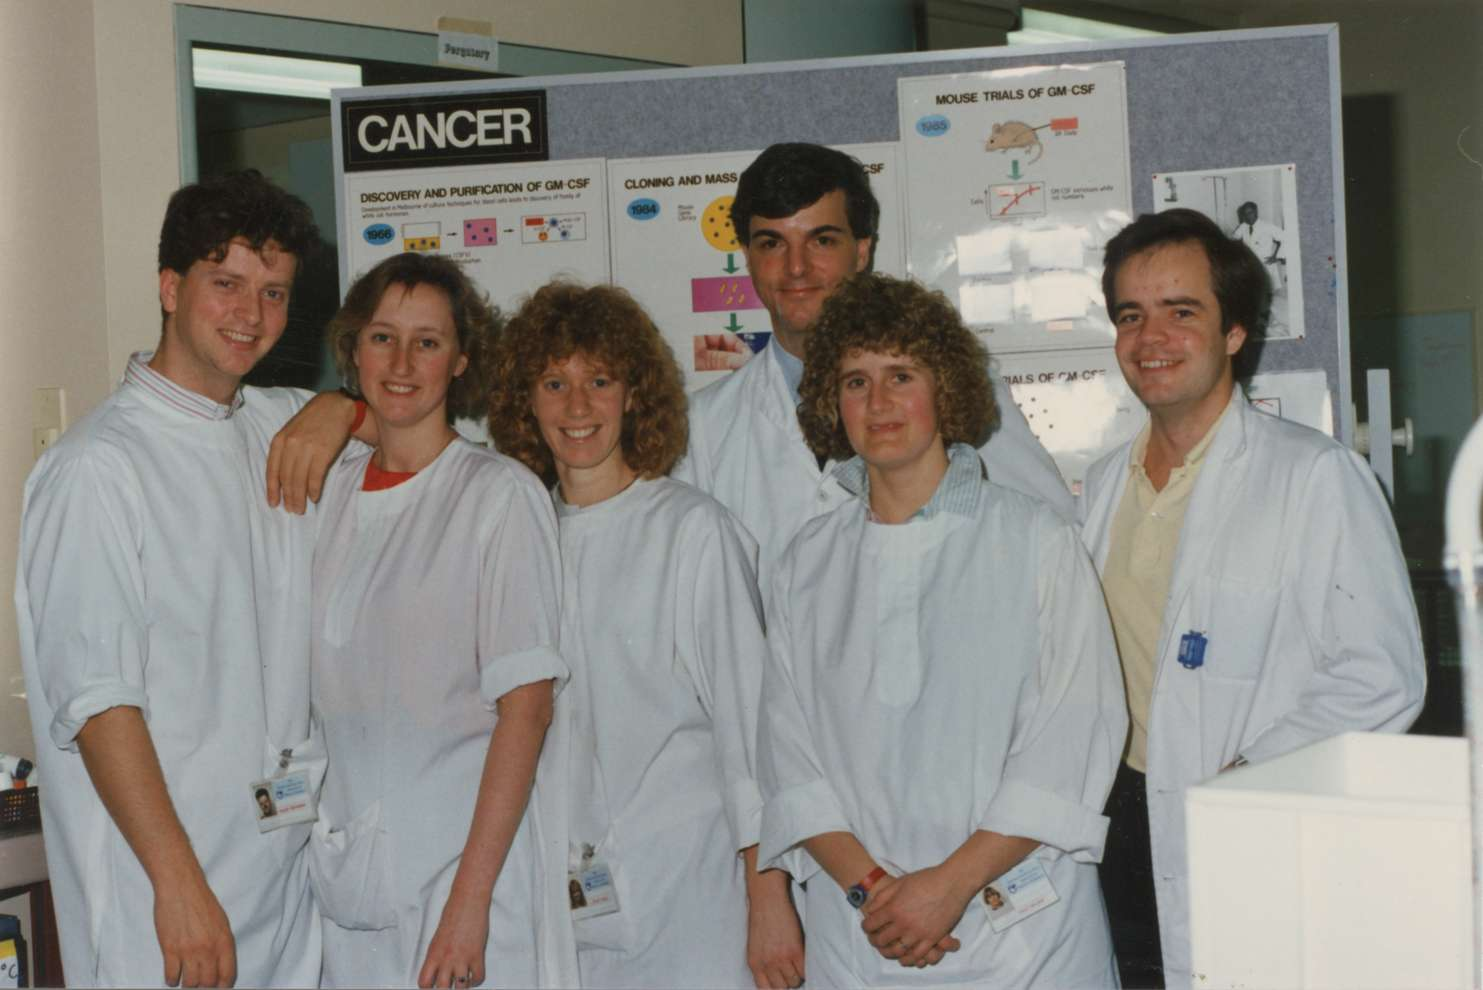 The group stand in front of a poster board, all wearing white lab coats.